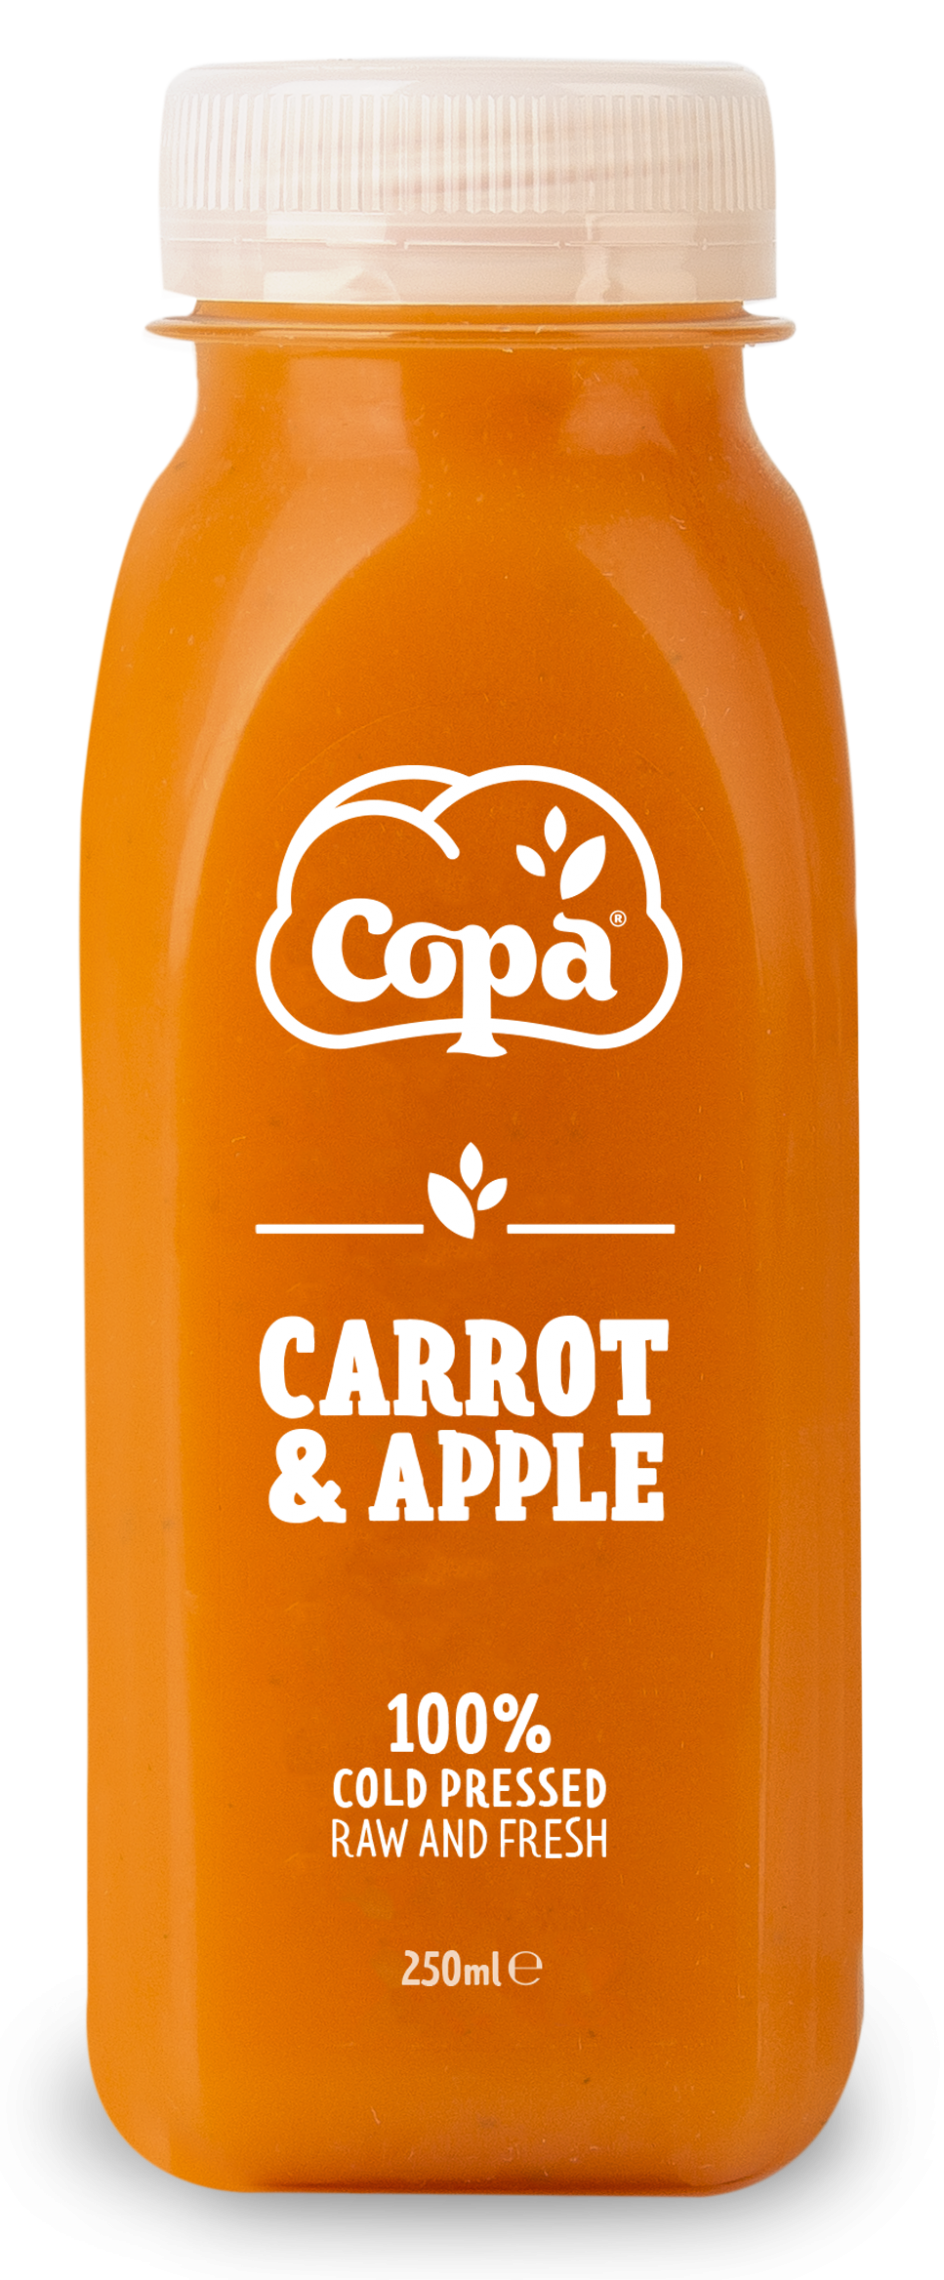 CARROT & APPLE